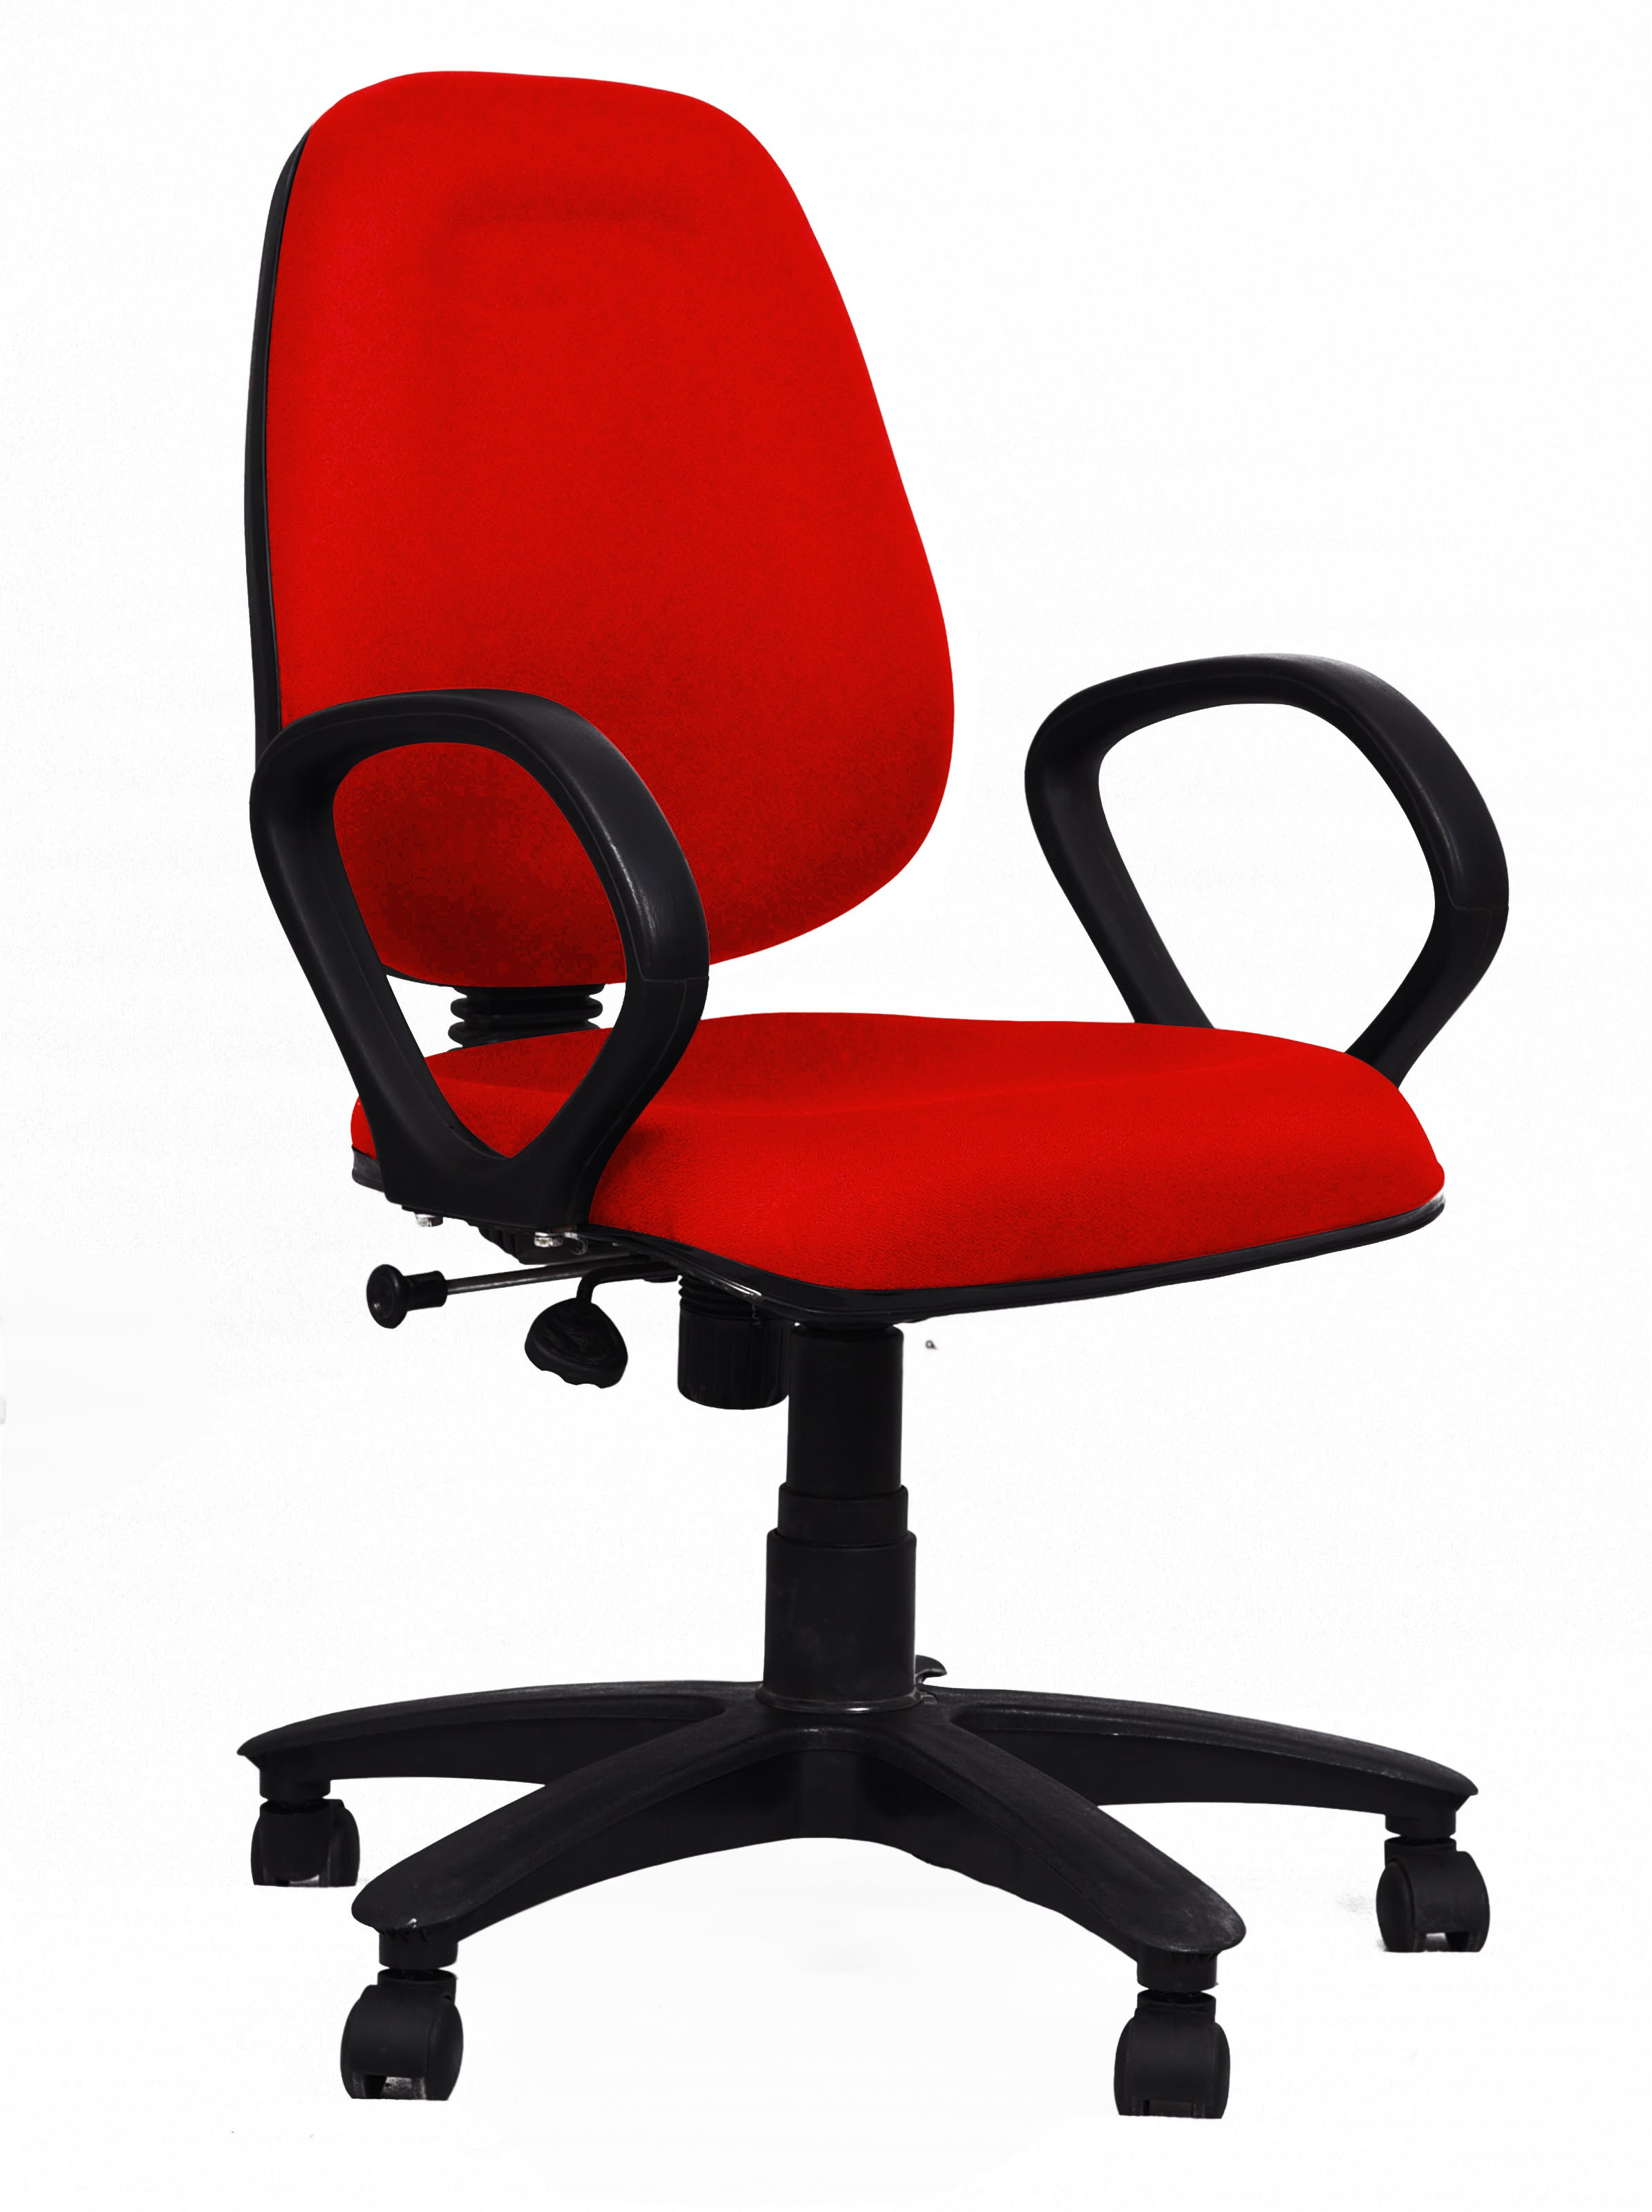 View Woodstock India Engineered Wood Office Chair(Red, Red) Furniture (Woodstock India)